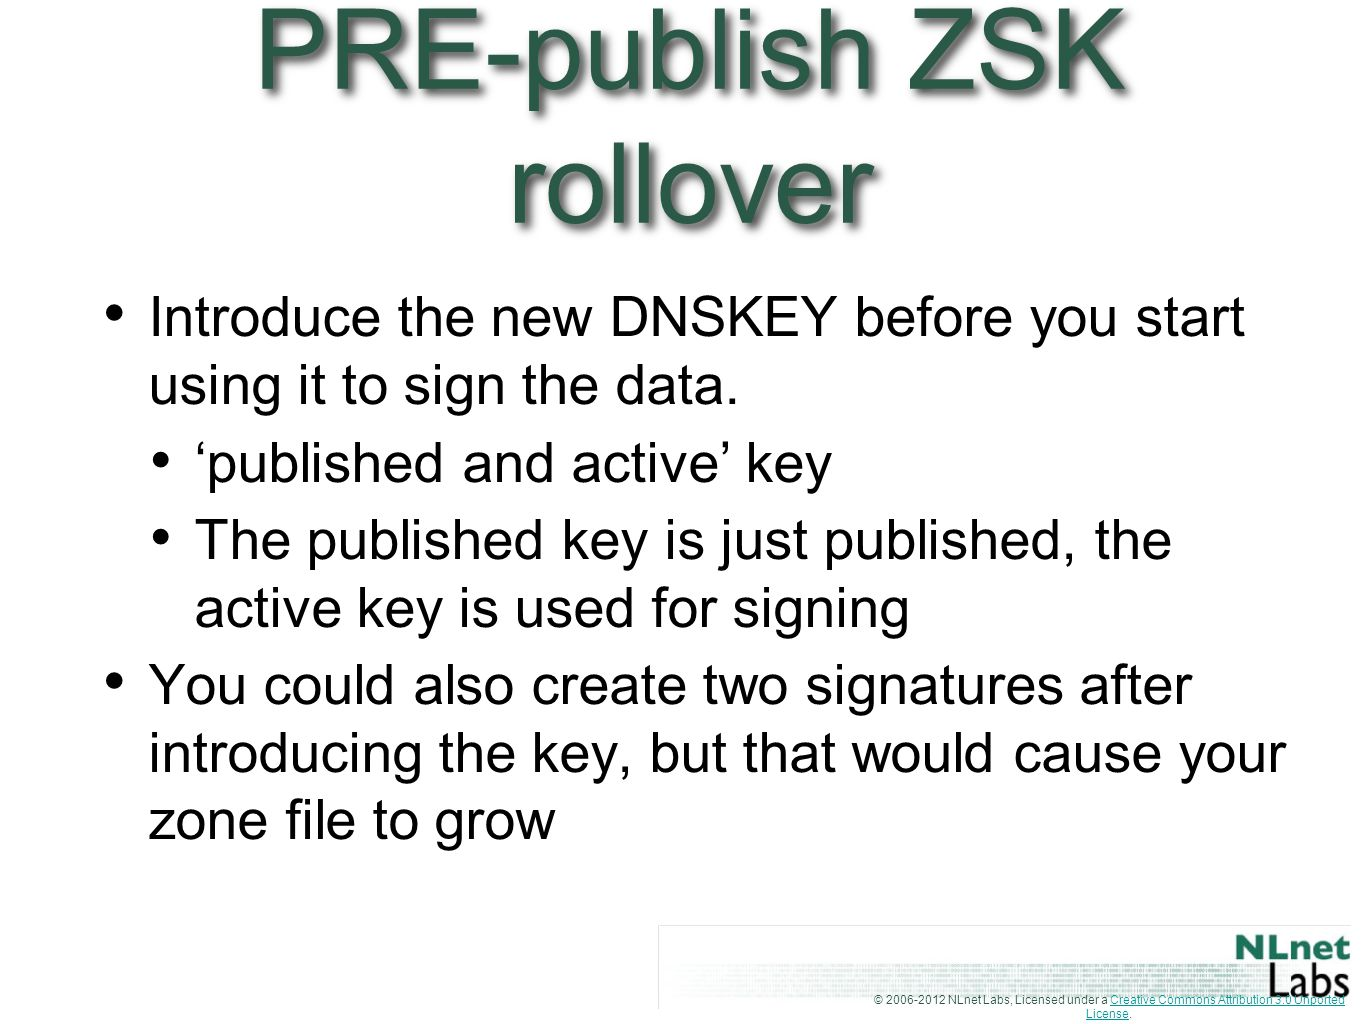 © 2006-2012 NLnet Labs, Licensed under a Creative Commons Attribution 3.0 Unported License.Creative Commons Attribution 3.0 Unported License PRE-publish ZSK rollover Introduce the new DNSKEY before you start using it to sign the data.